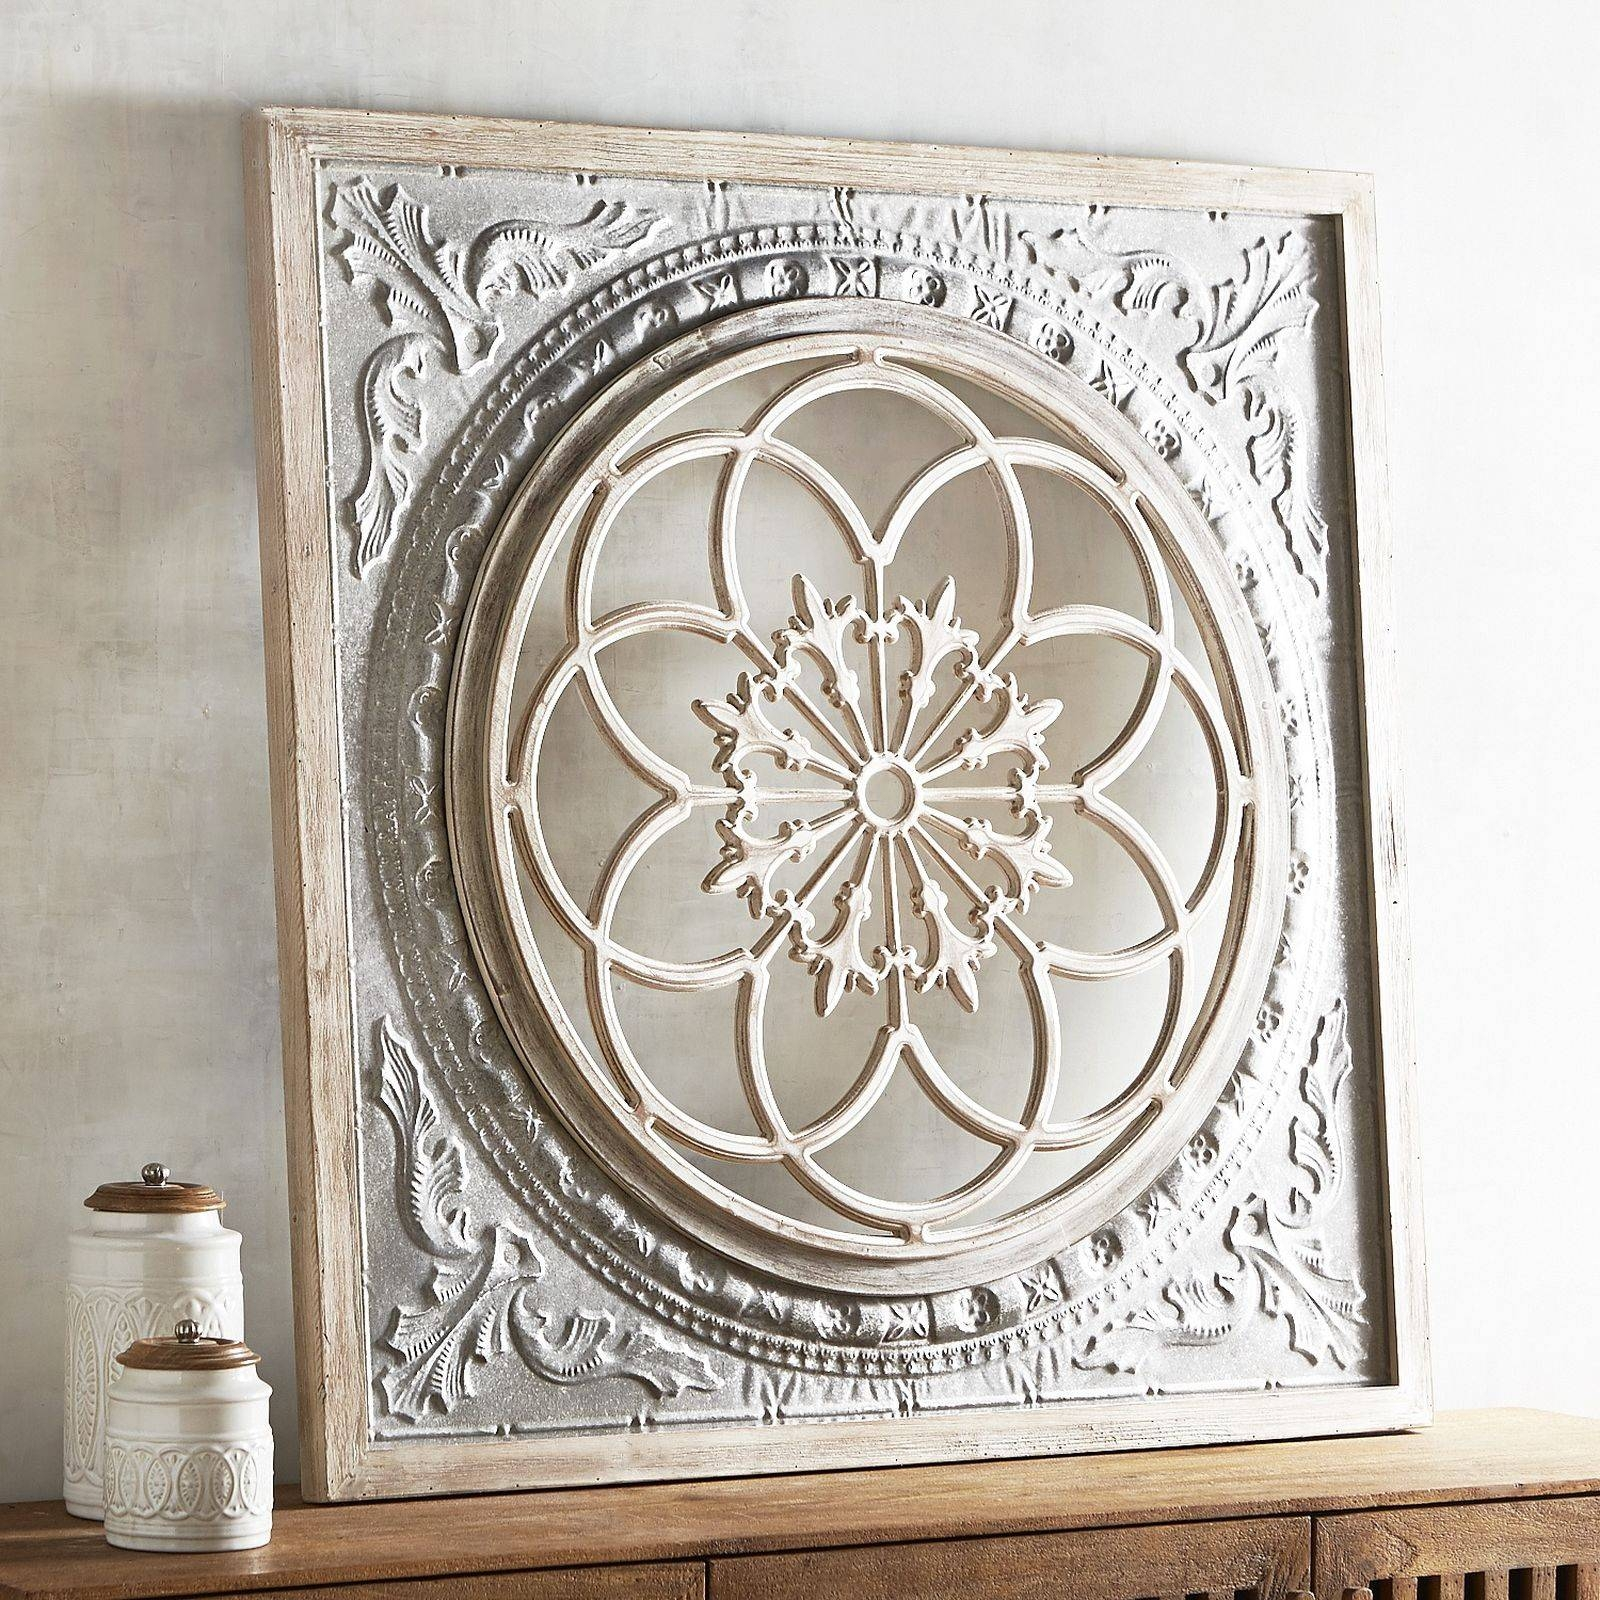 Wall Art Designs: Tin Wall Art Galvanized Medallion Wall Decor Within Latest Square Metal Wall Art (View 17 of 20)